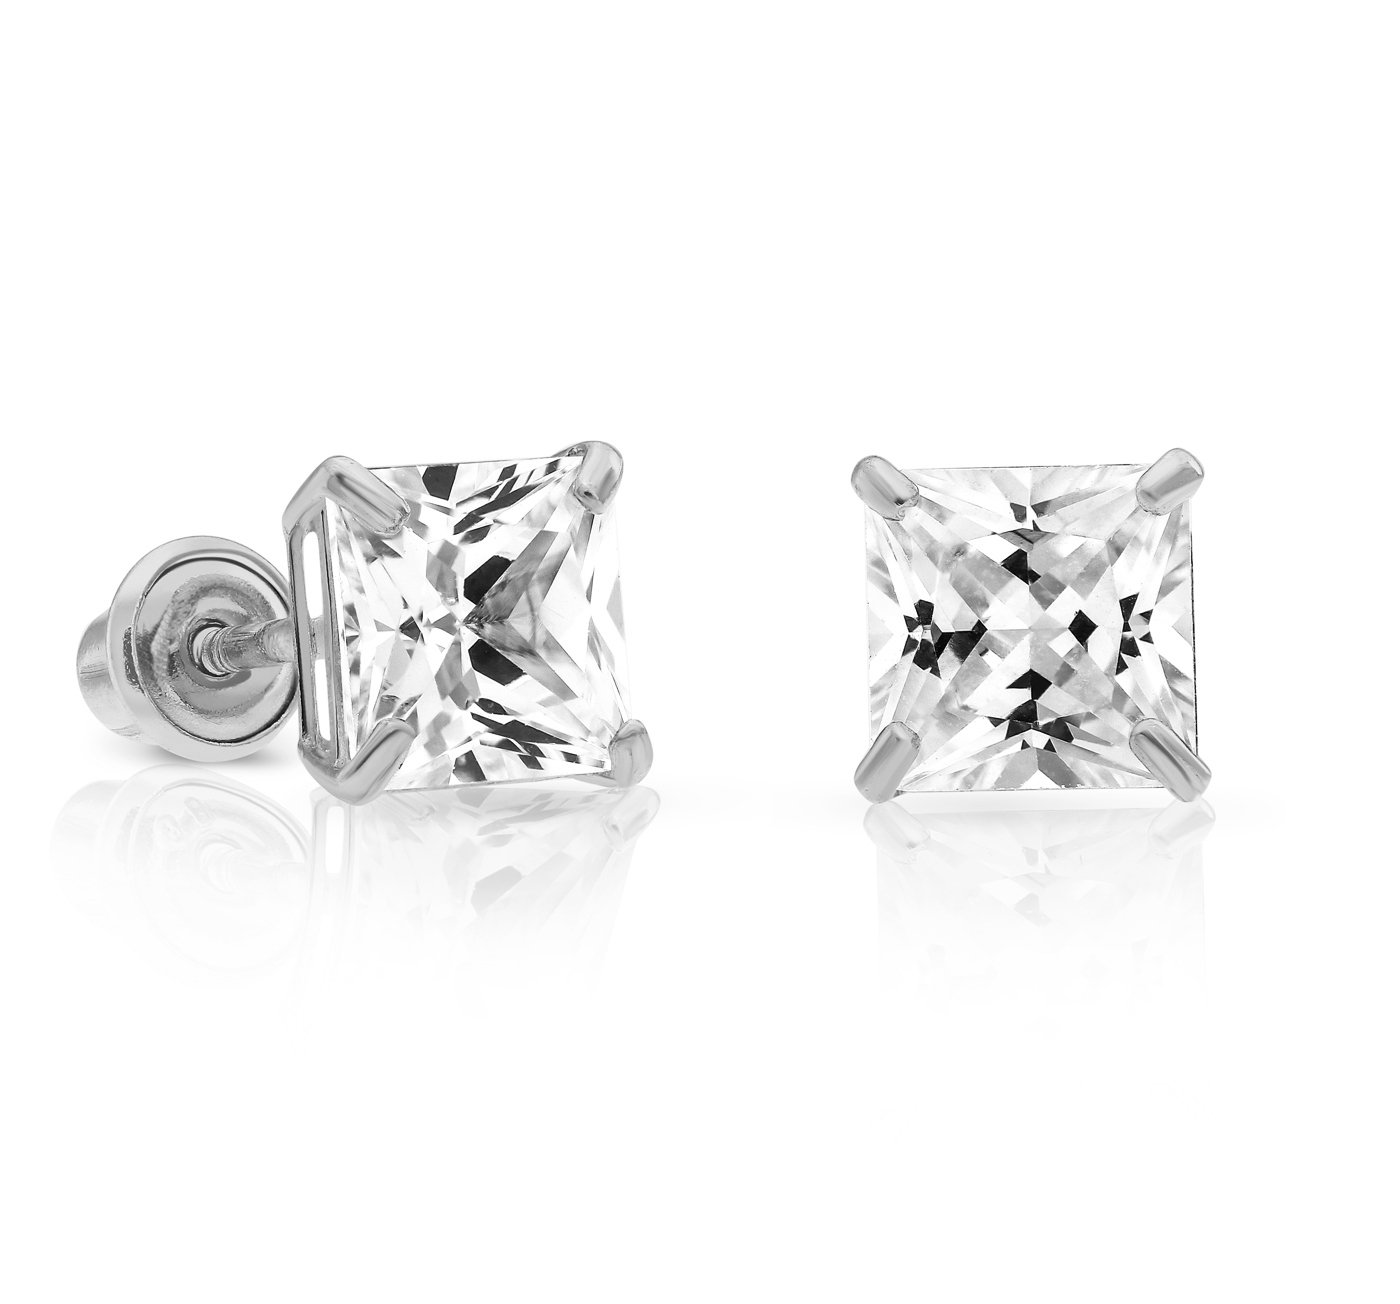 14k White Gold Cubic Zirconia Princess Cut Stud Earrings with Screw Backs (5MM)